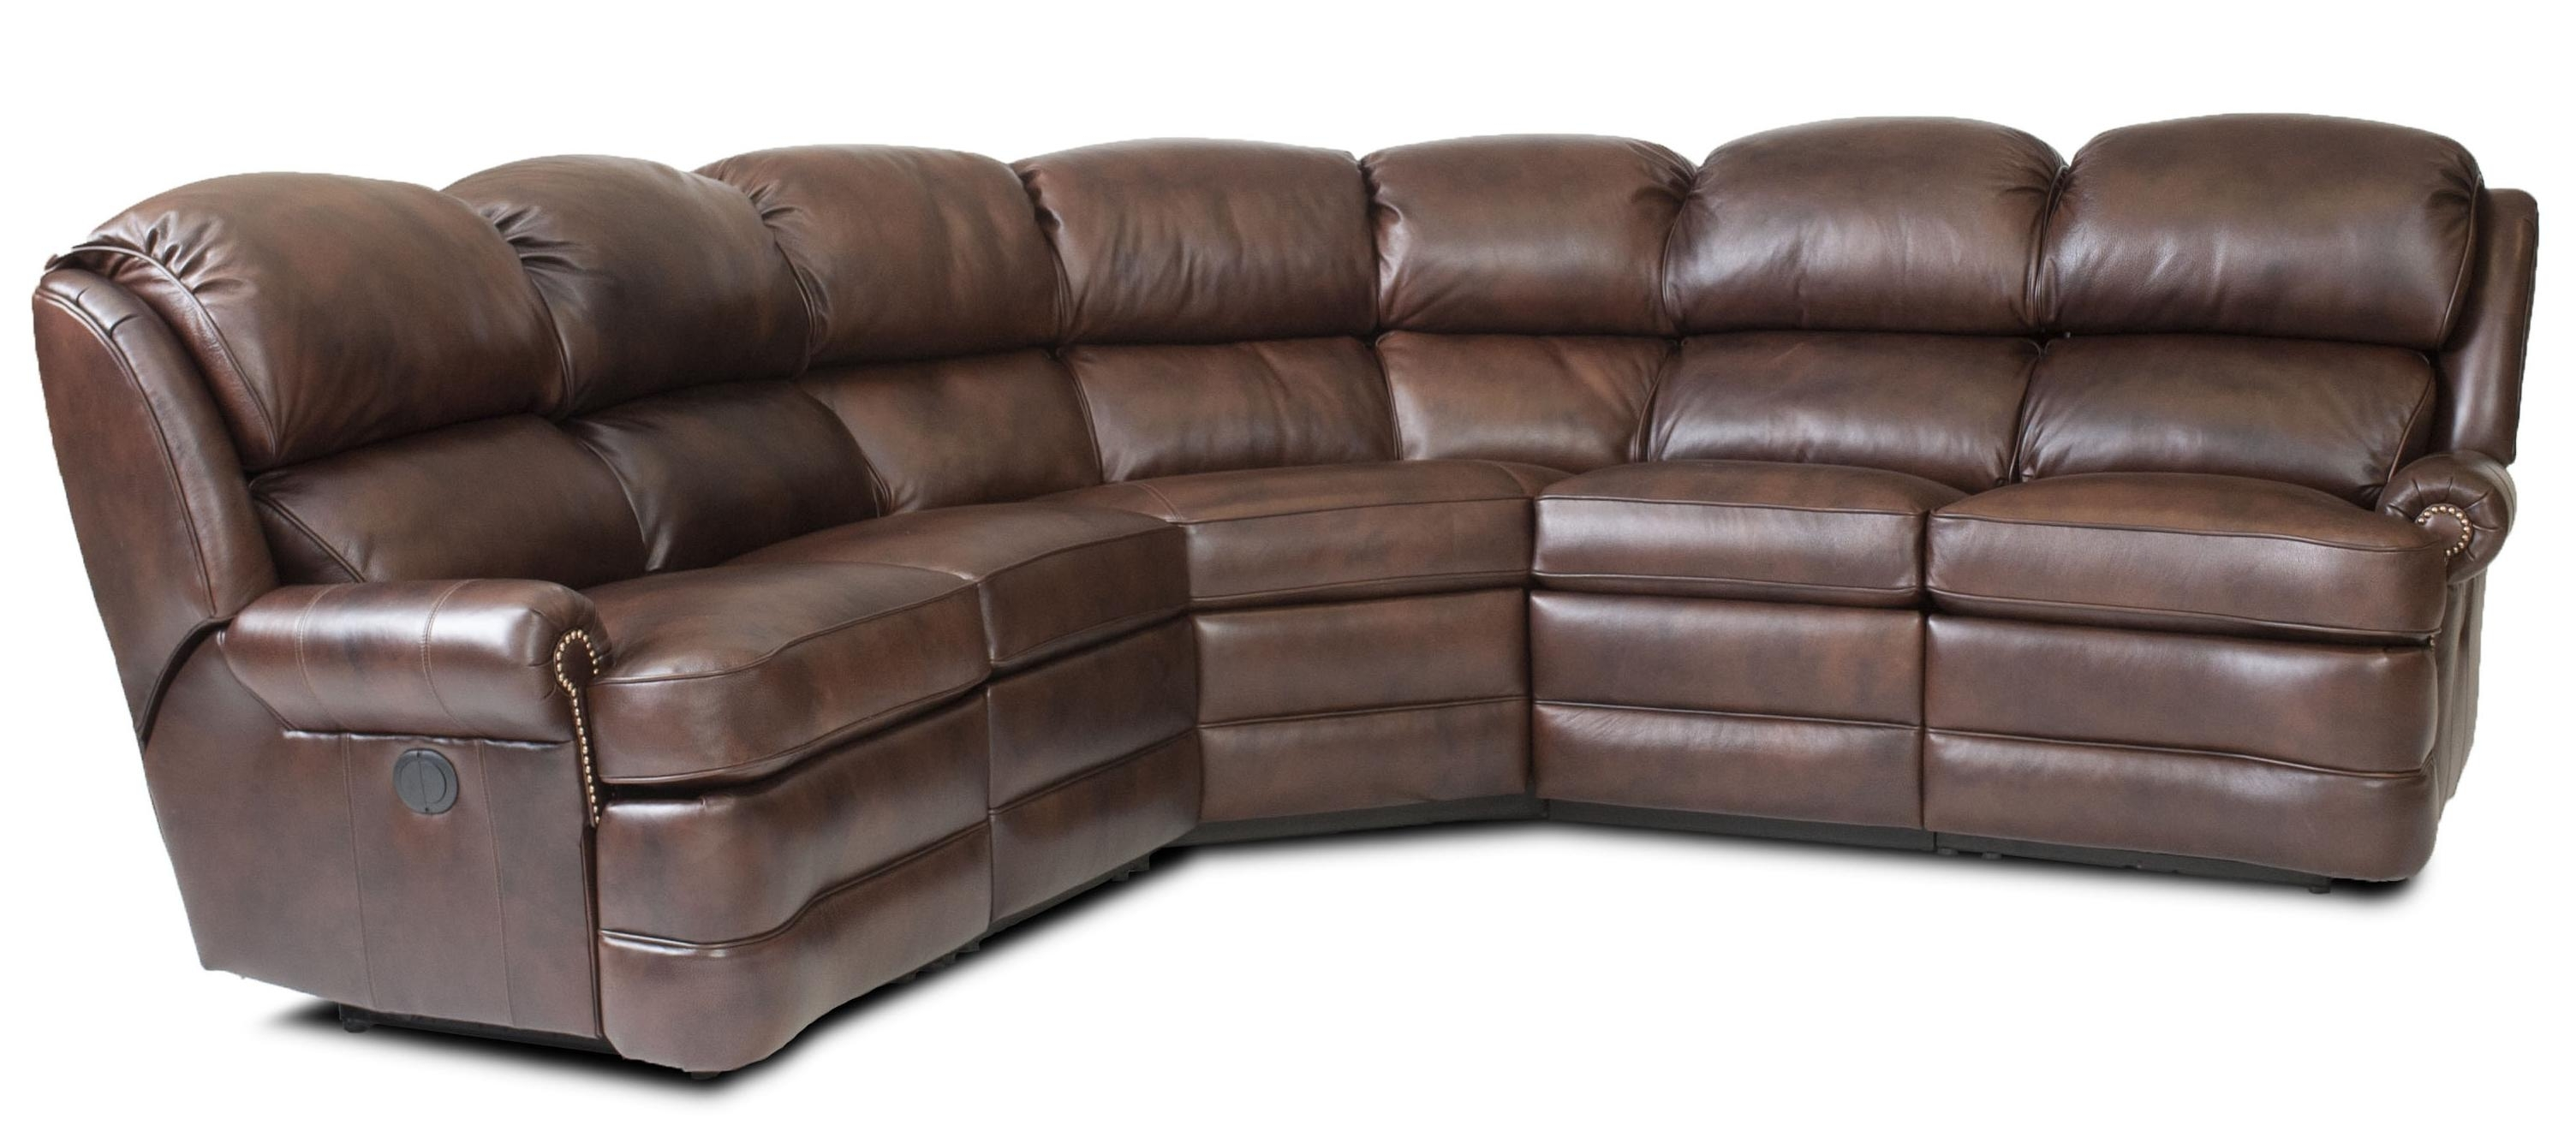 Famous Sectional Sofas Under 900 Regarding Transitional 5 Piece Reclining Sectional Sofa With Small Rolled (View 8 of 20)